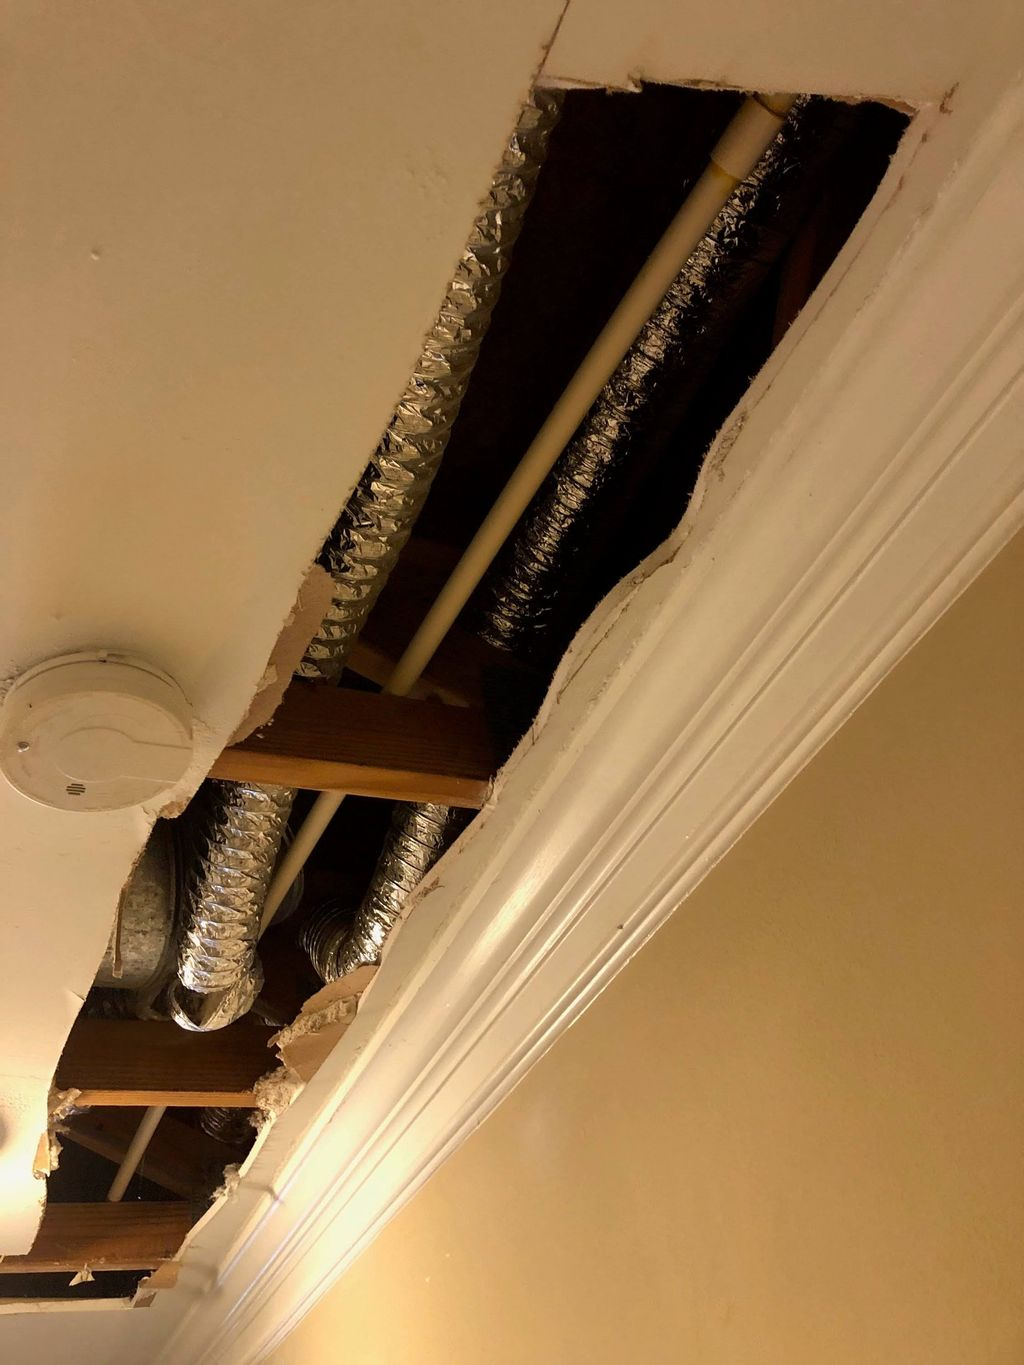 Replace flex dryer vent duct with hard vent duct